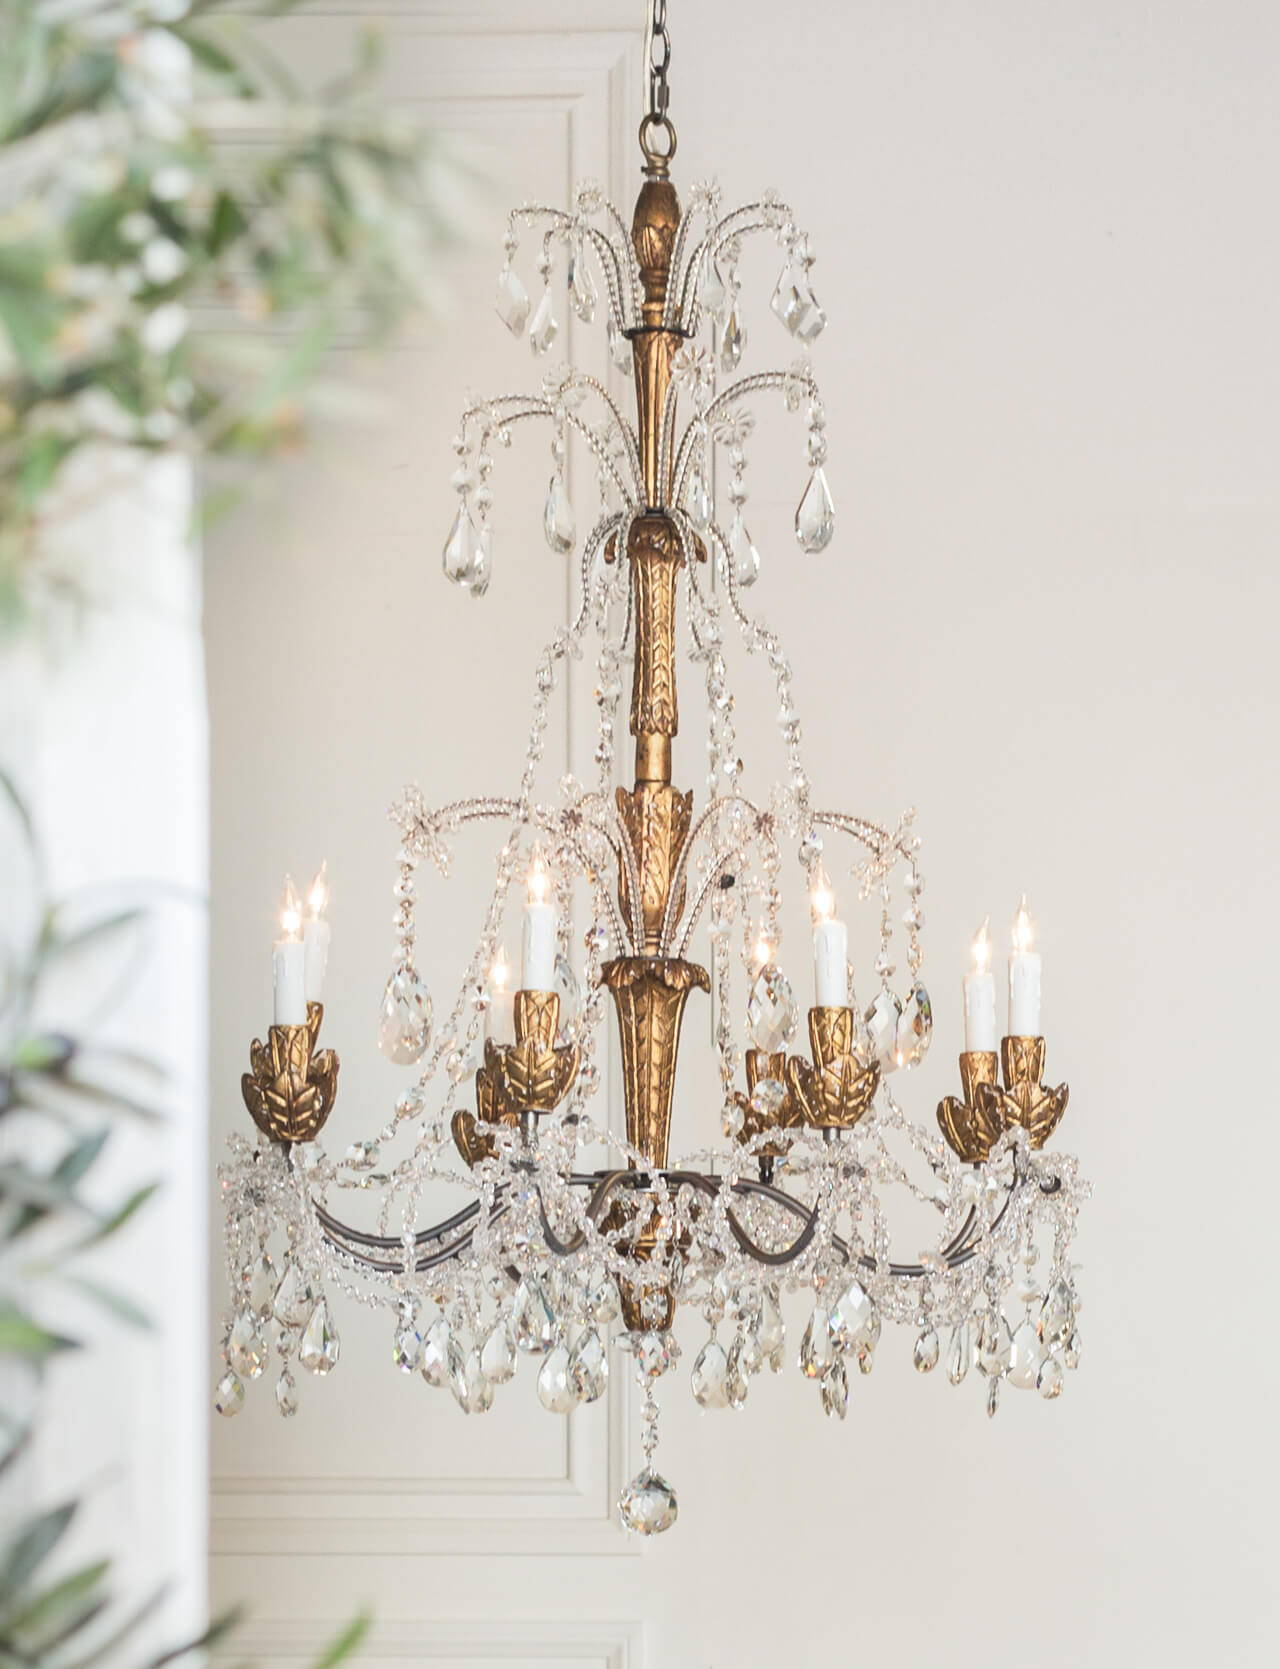 Eloquence® Genovese Chandelier in Aged Gold Finish